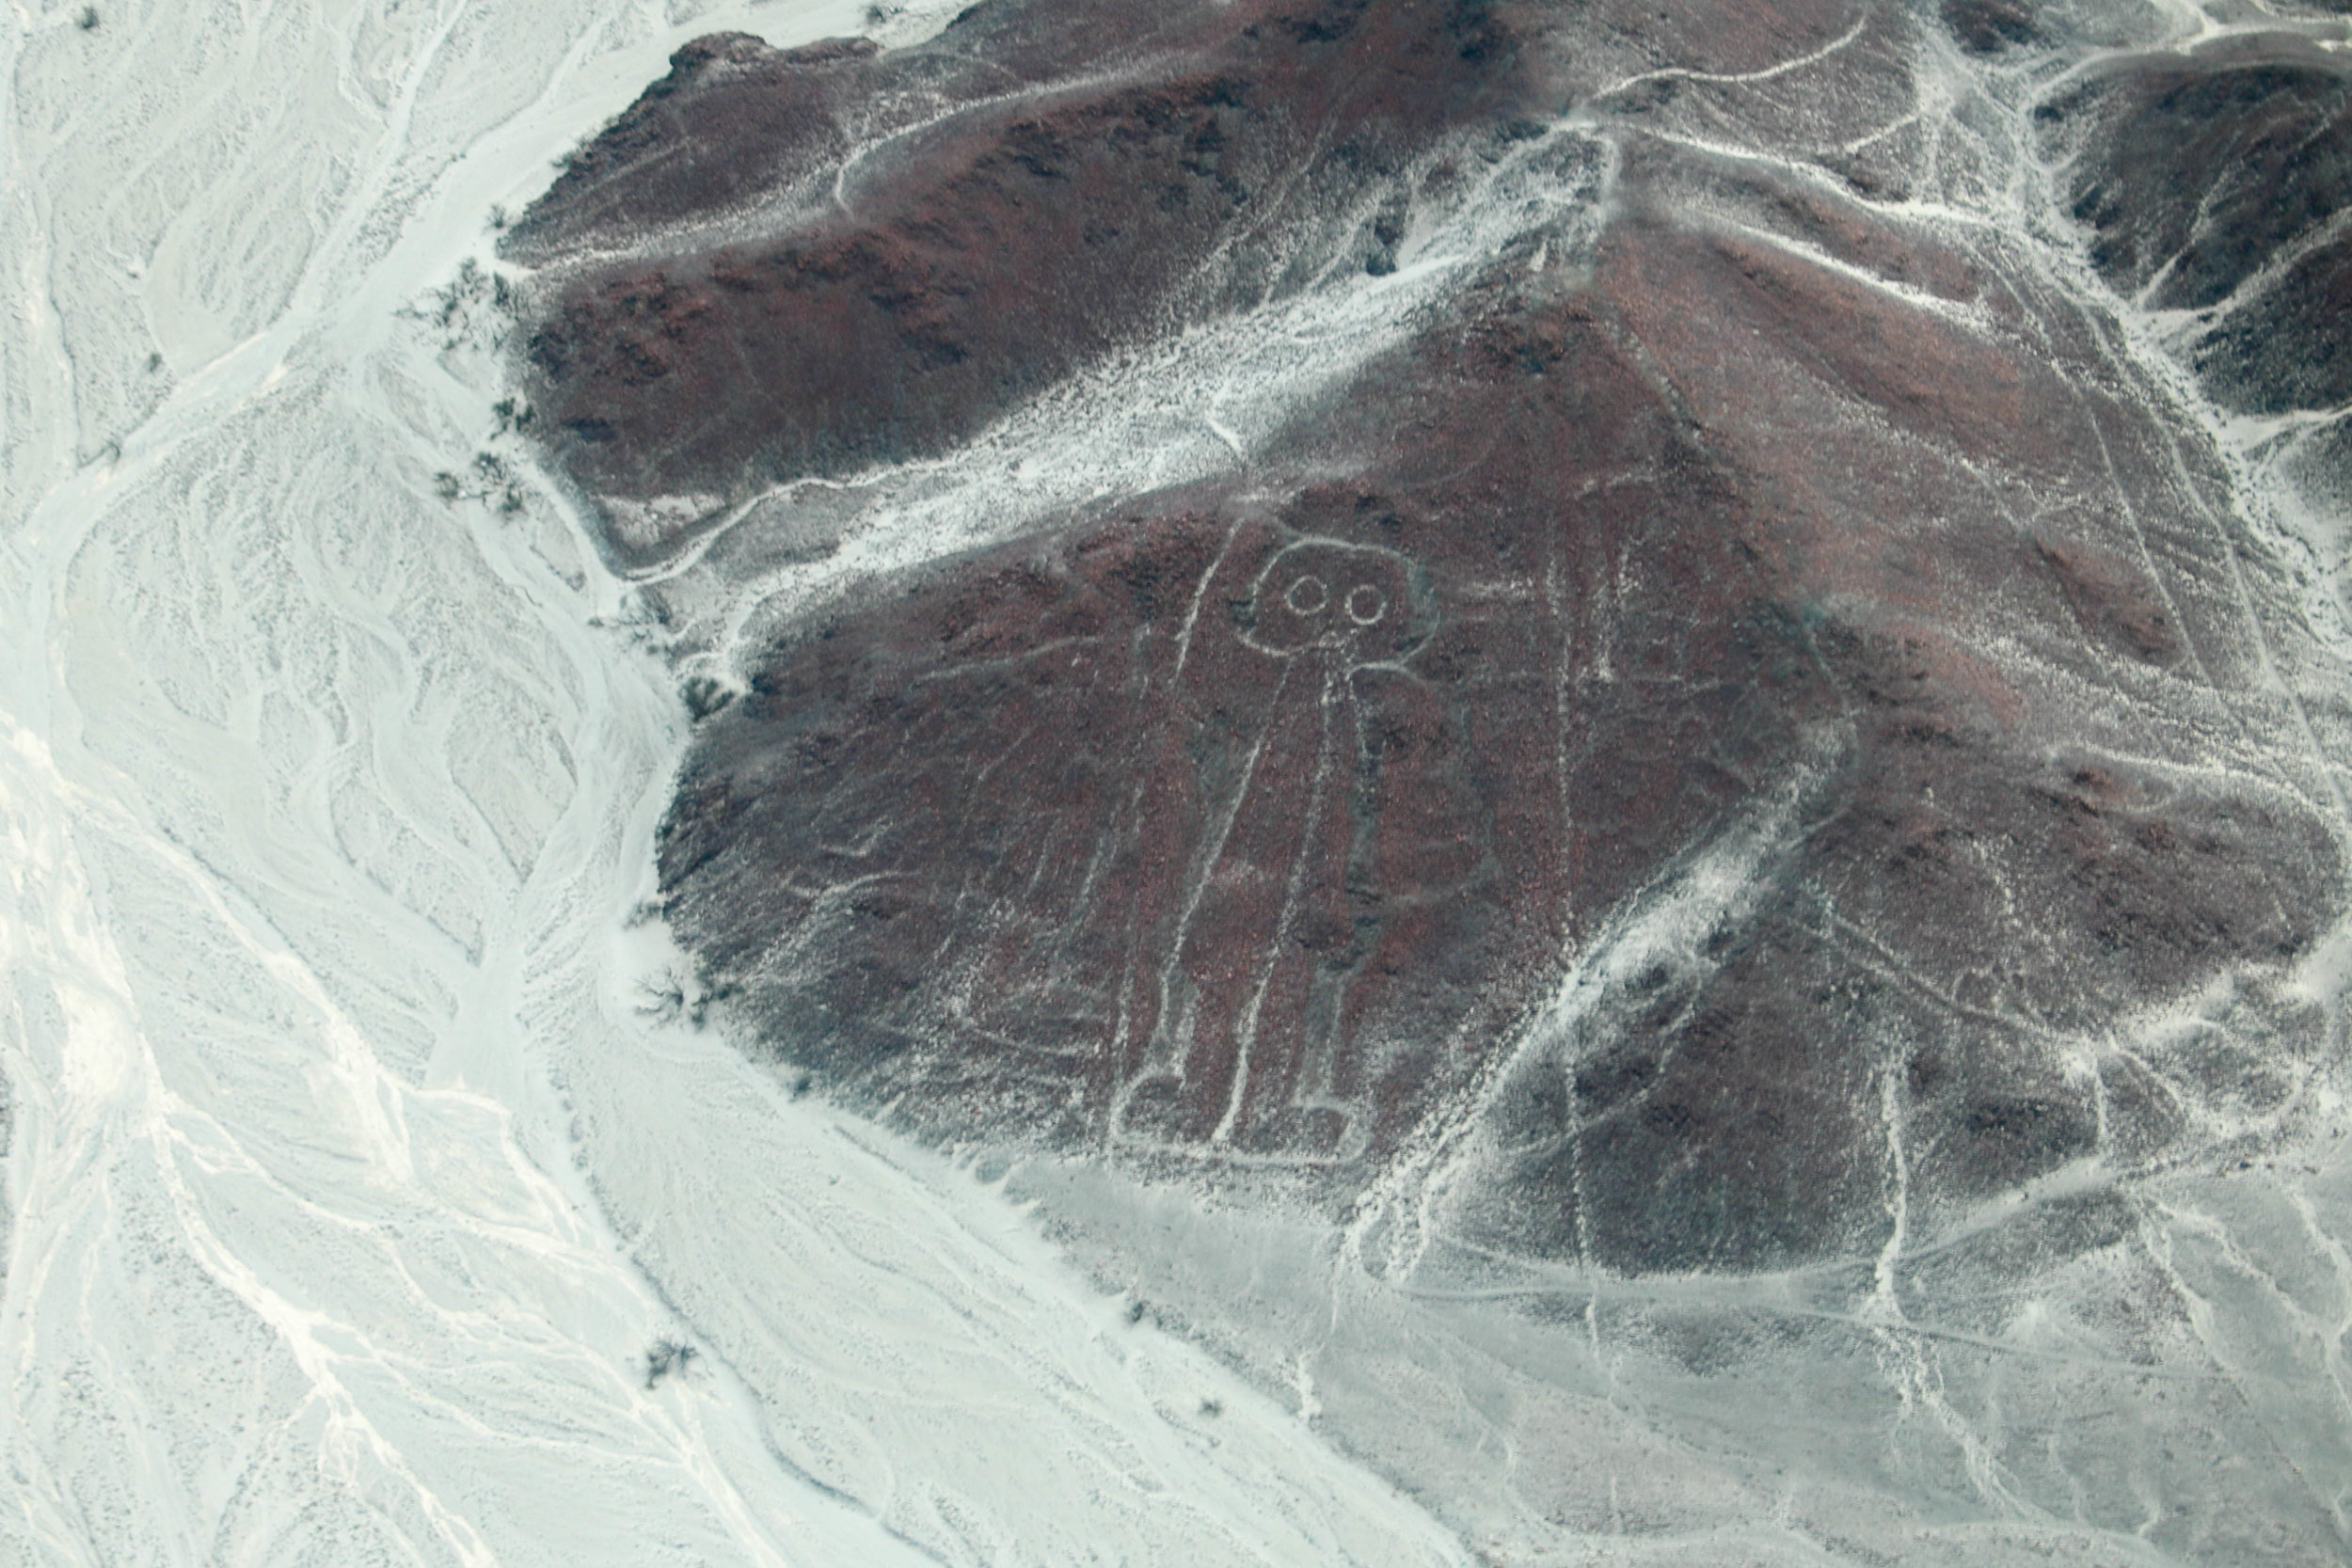 The Astronaut at Nazca, Peru